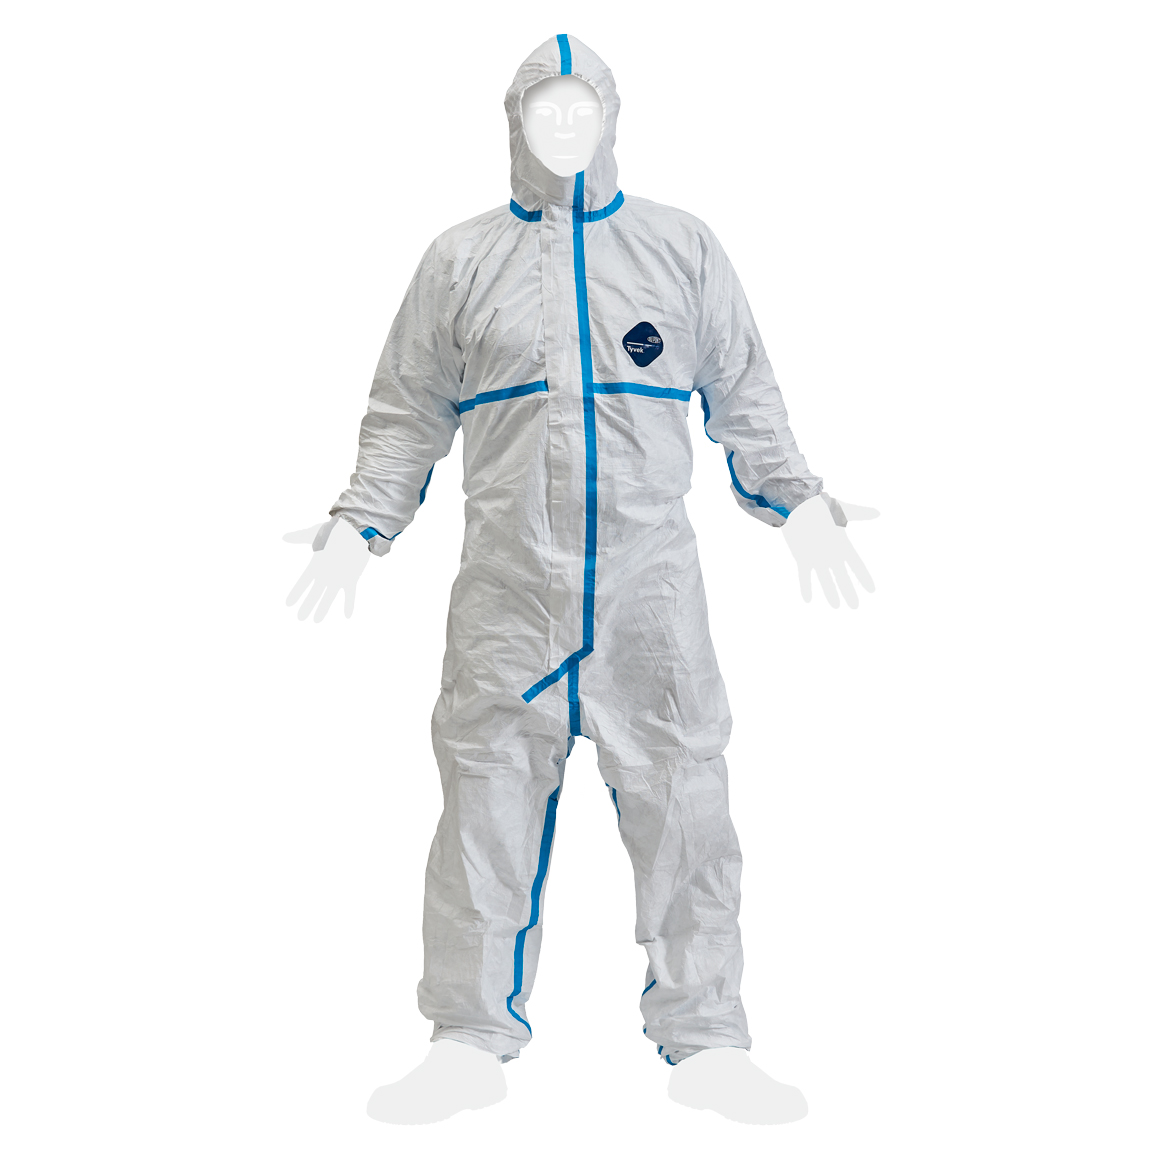 DuPont Tyvek 600 Coverall image